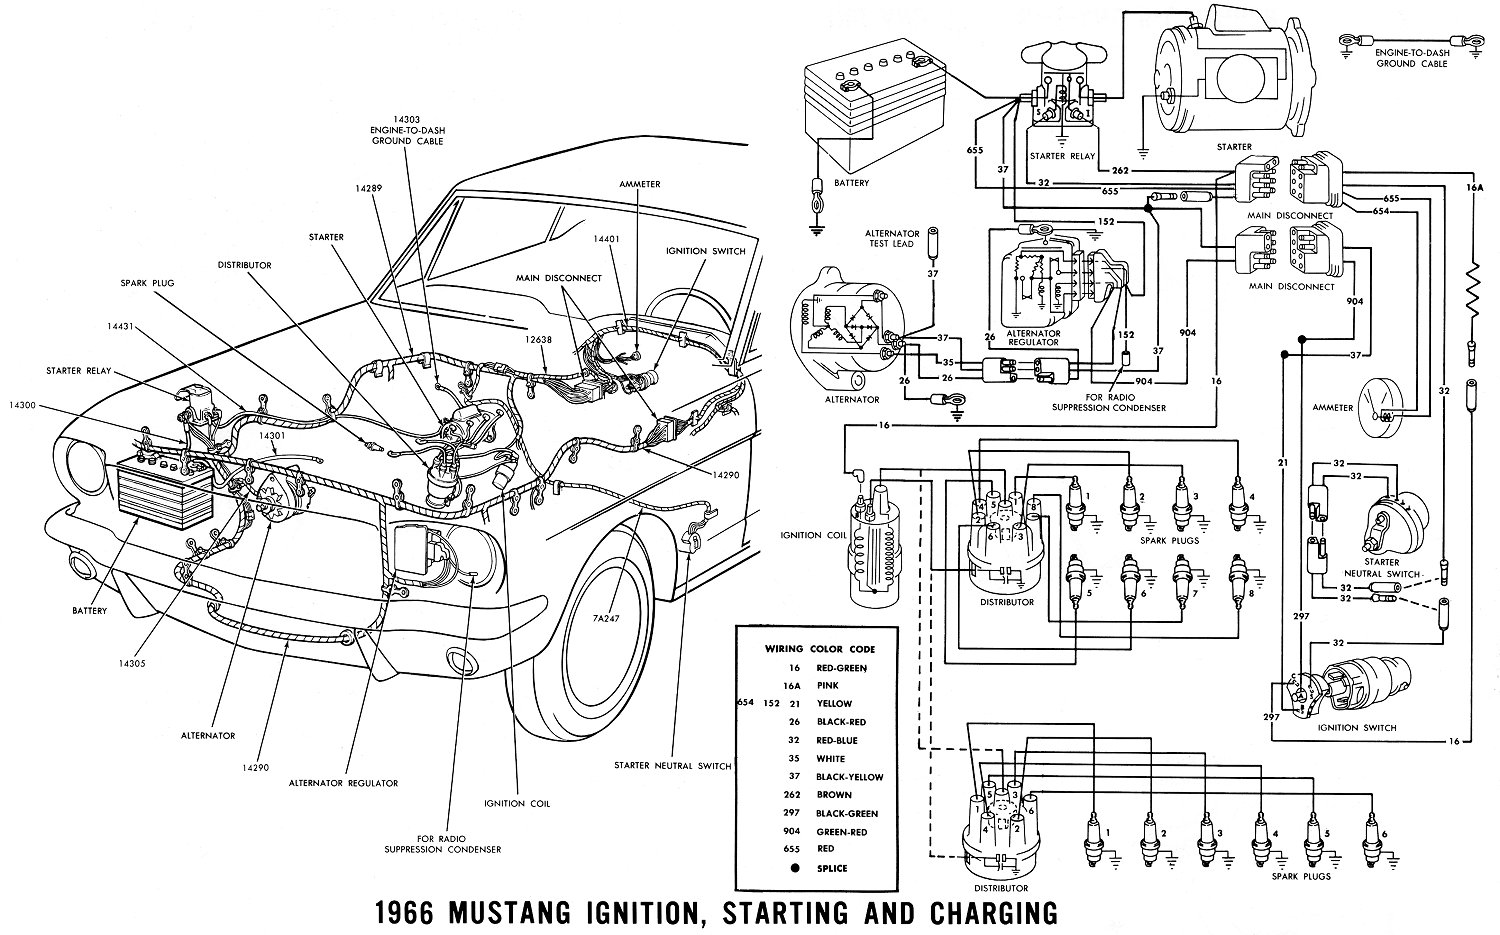 1970 Mustang Wiring Diagram Pdf Schematics Diagrams 70 Ford Vintage Rh Midlife66 Com 1969